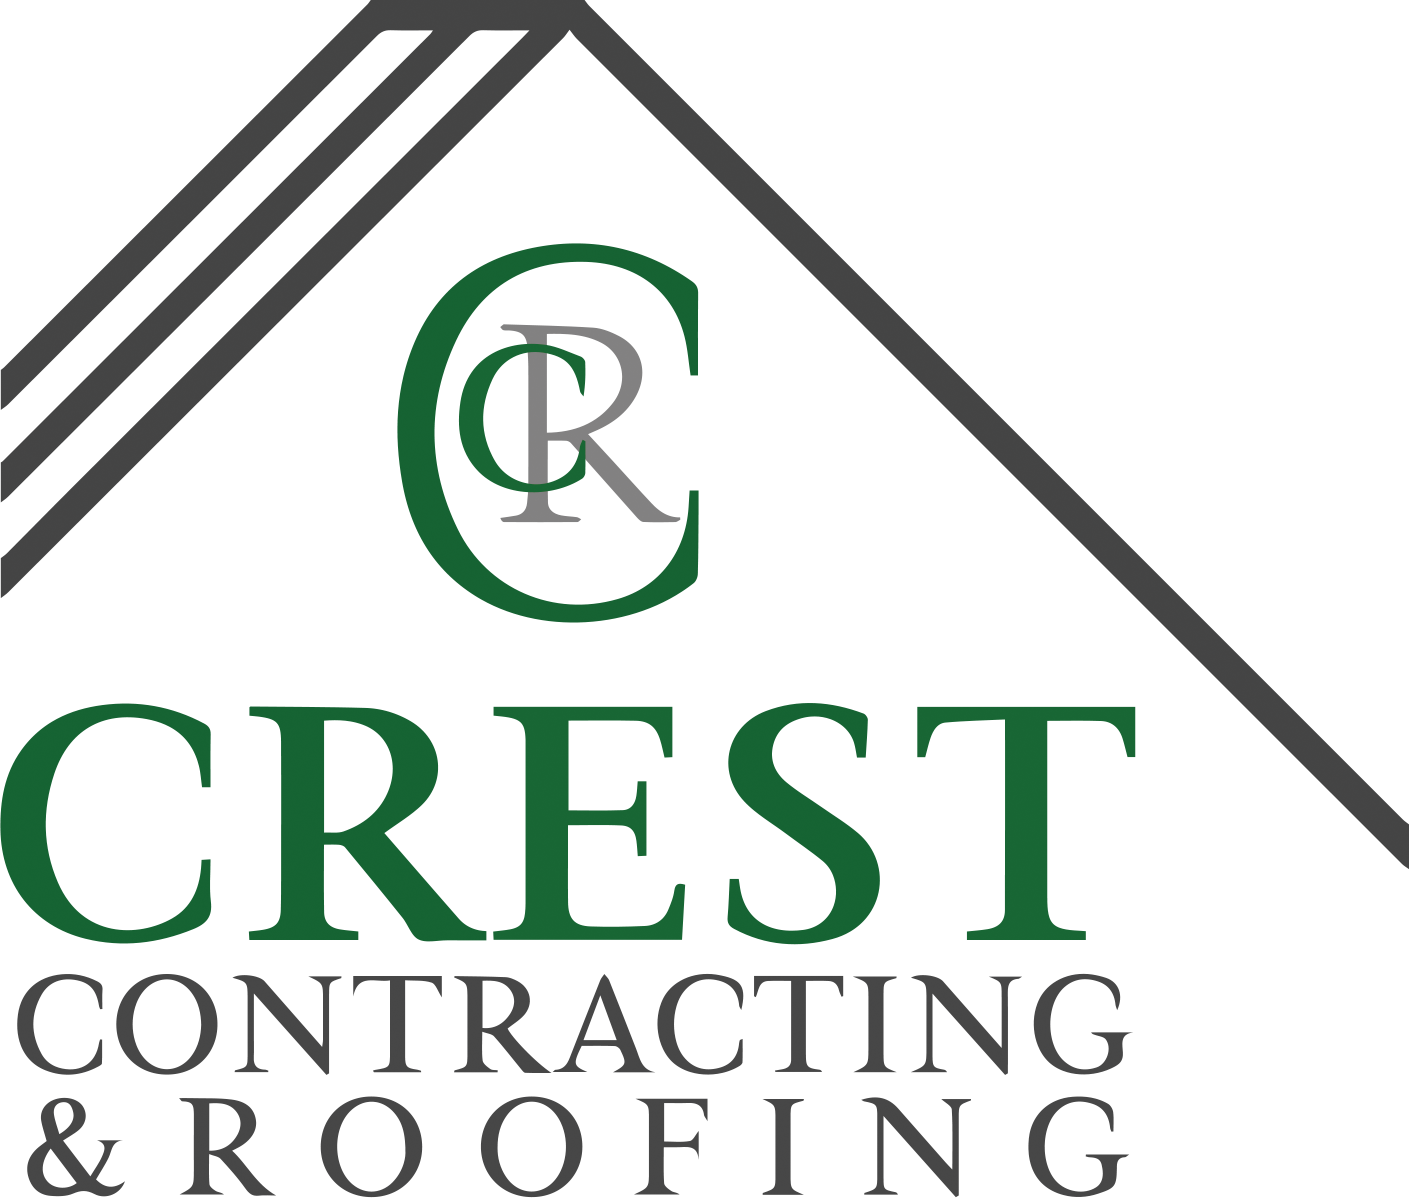 Crest Contracting and Roofing | Texas Roofing Contractor